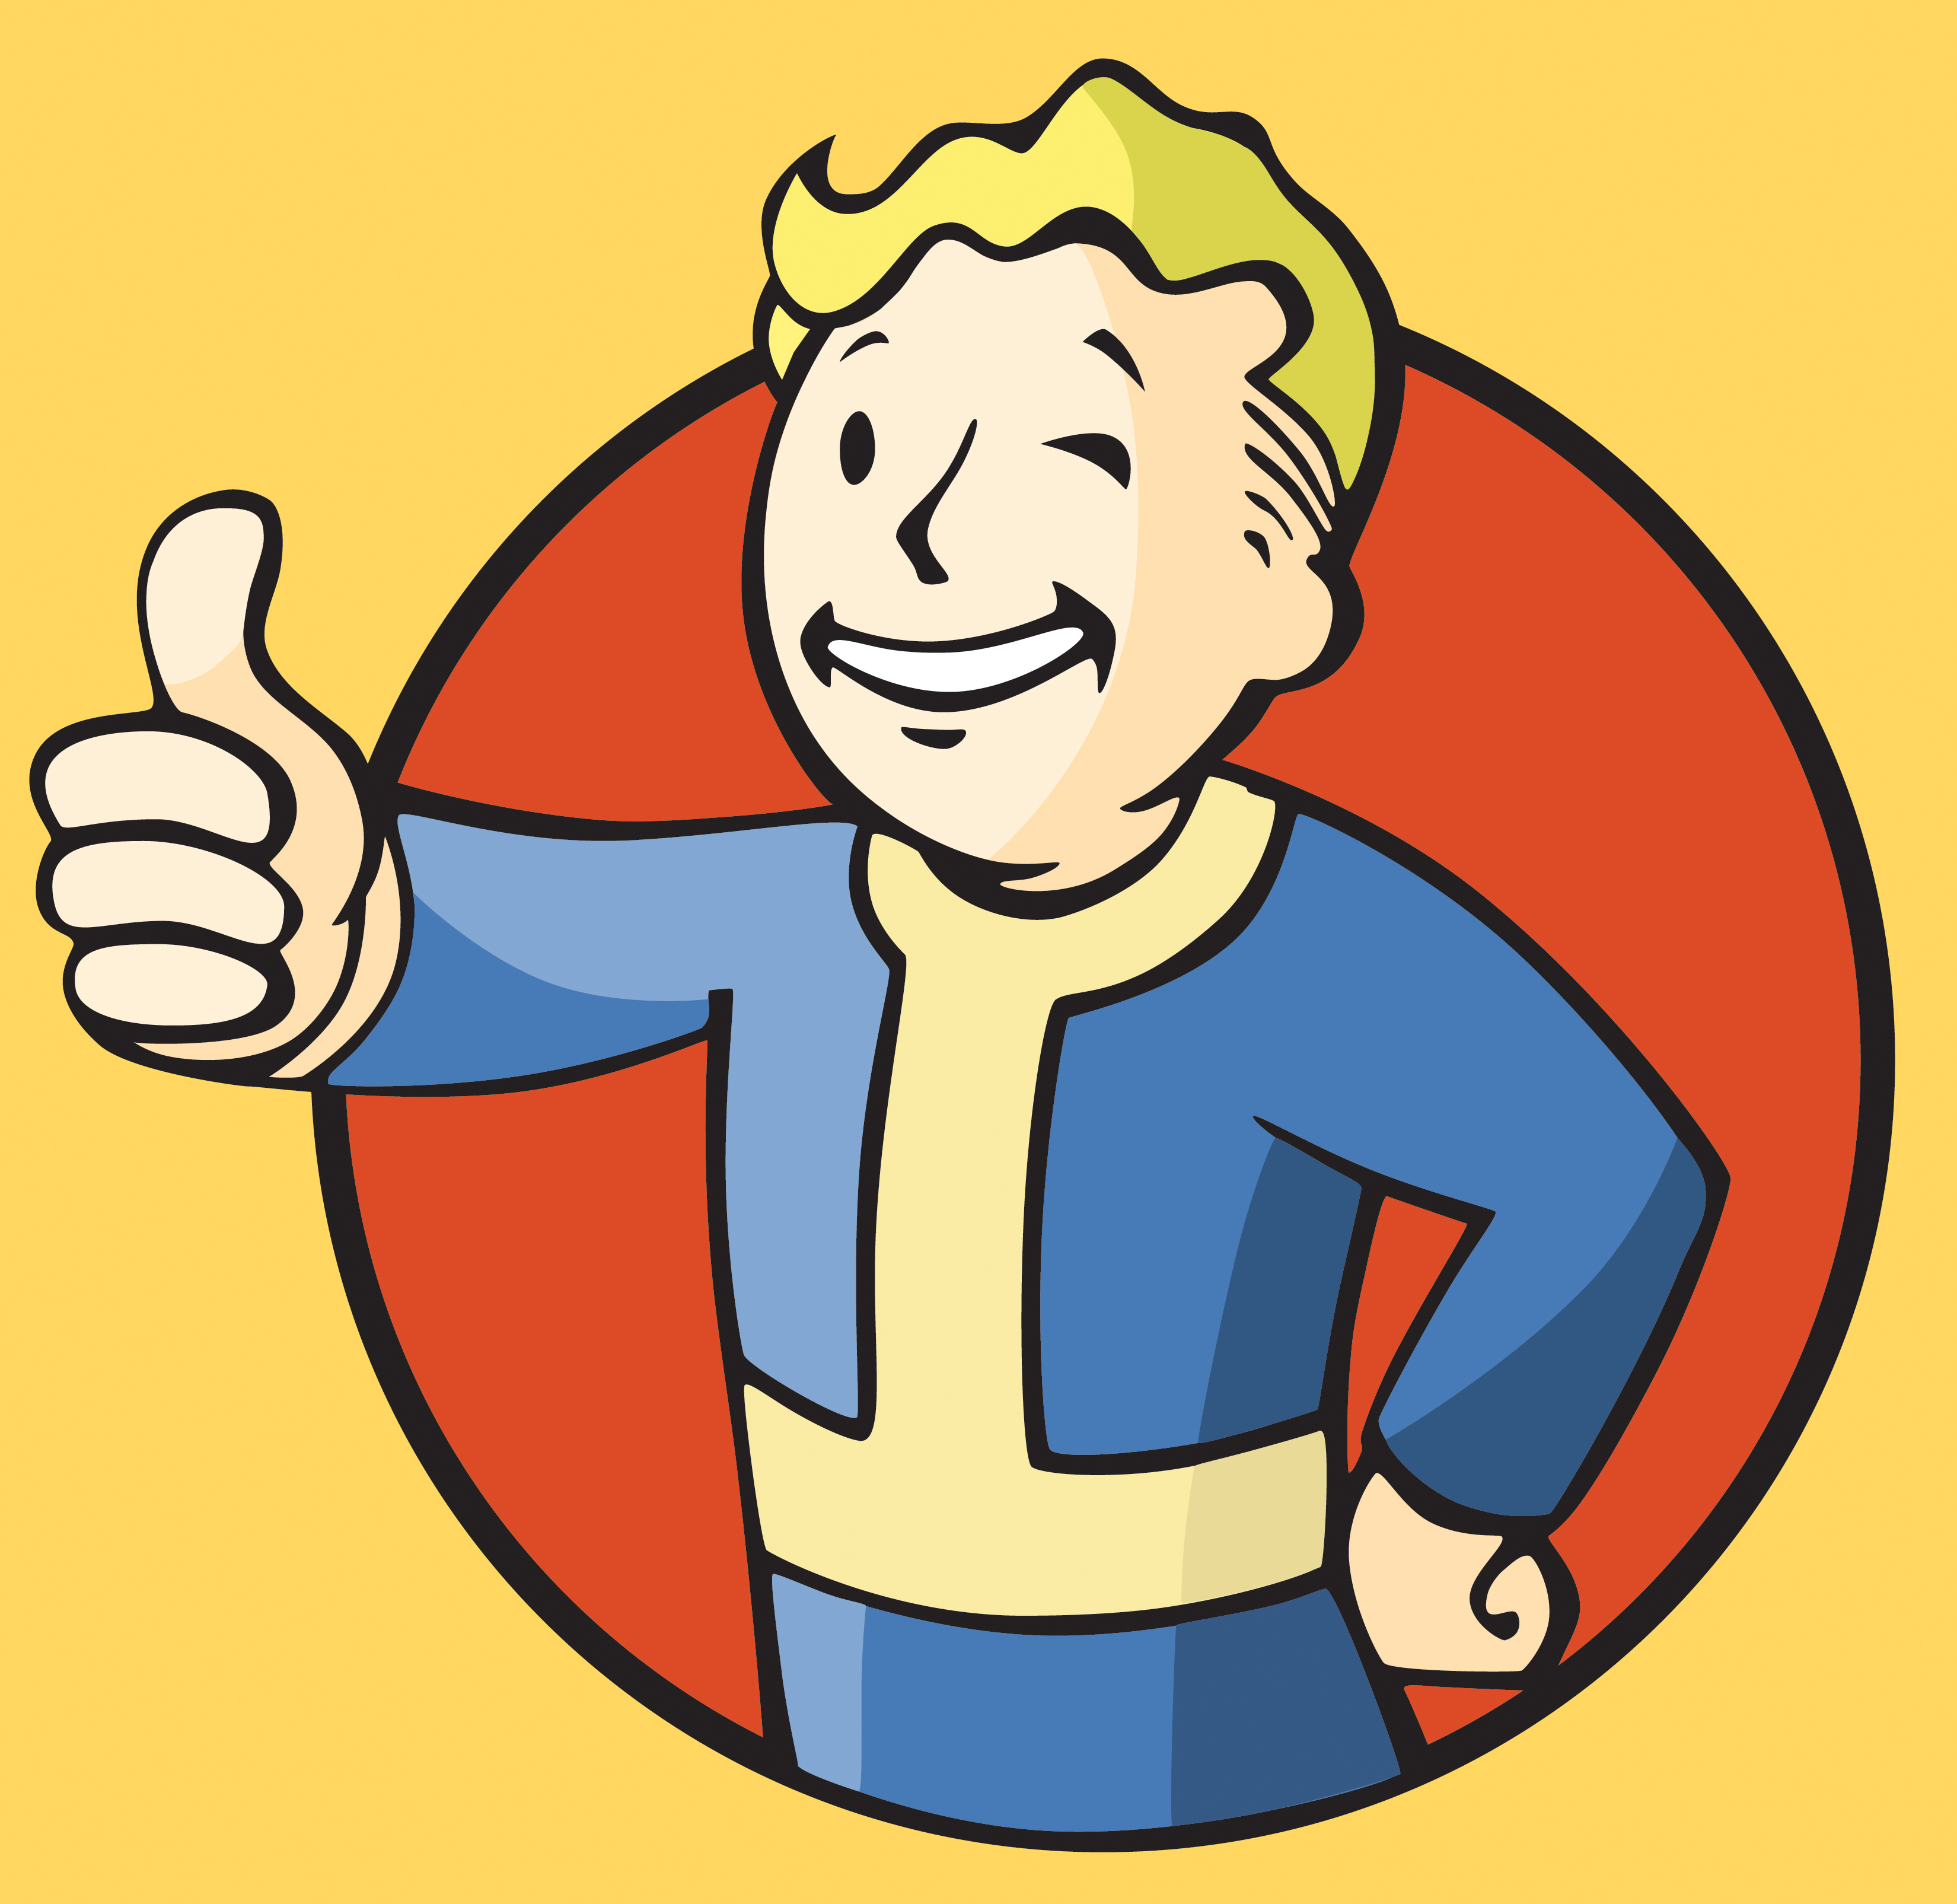 Fallout vault boy clipart vector black and white download Fallout 3 boy clipart - ClipartFest vector black and white download